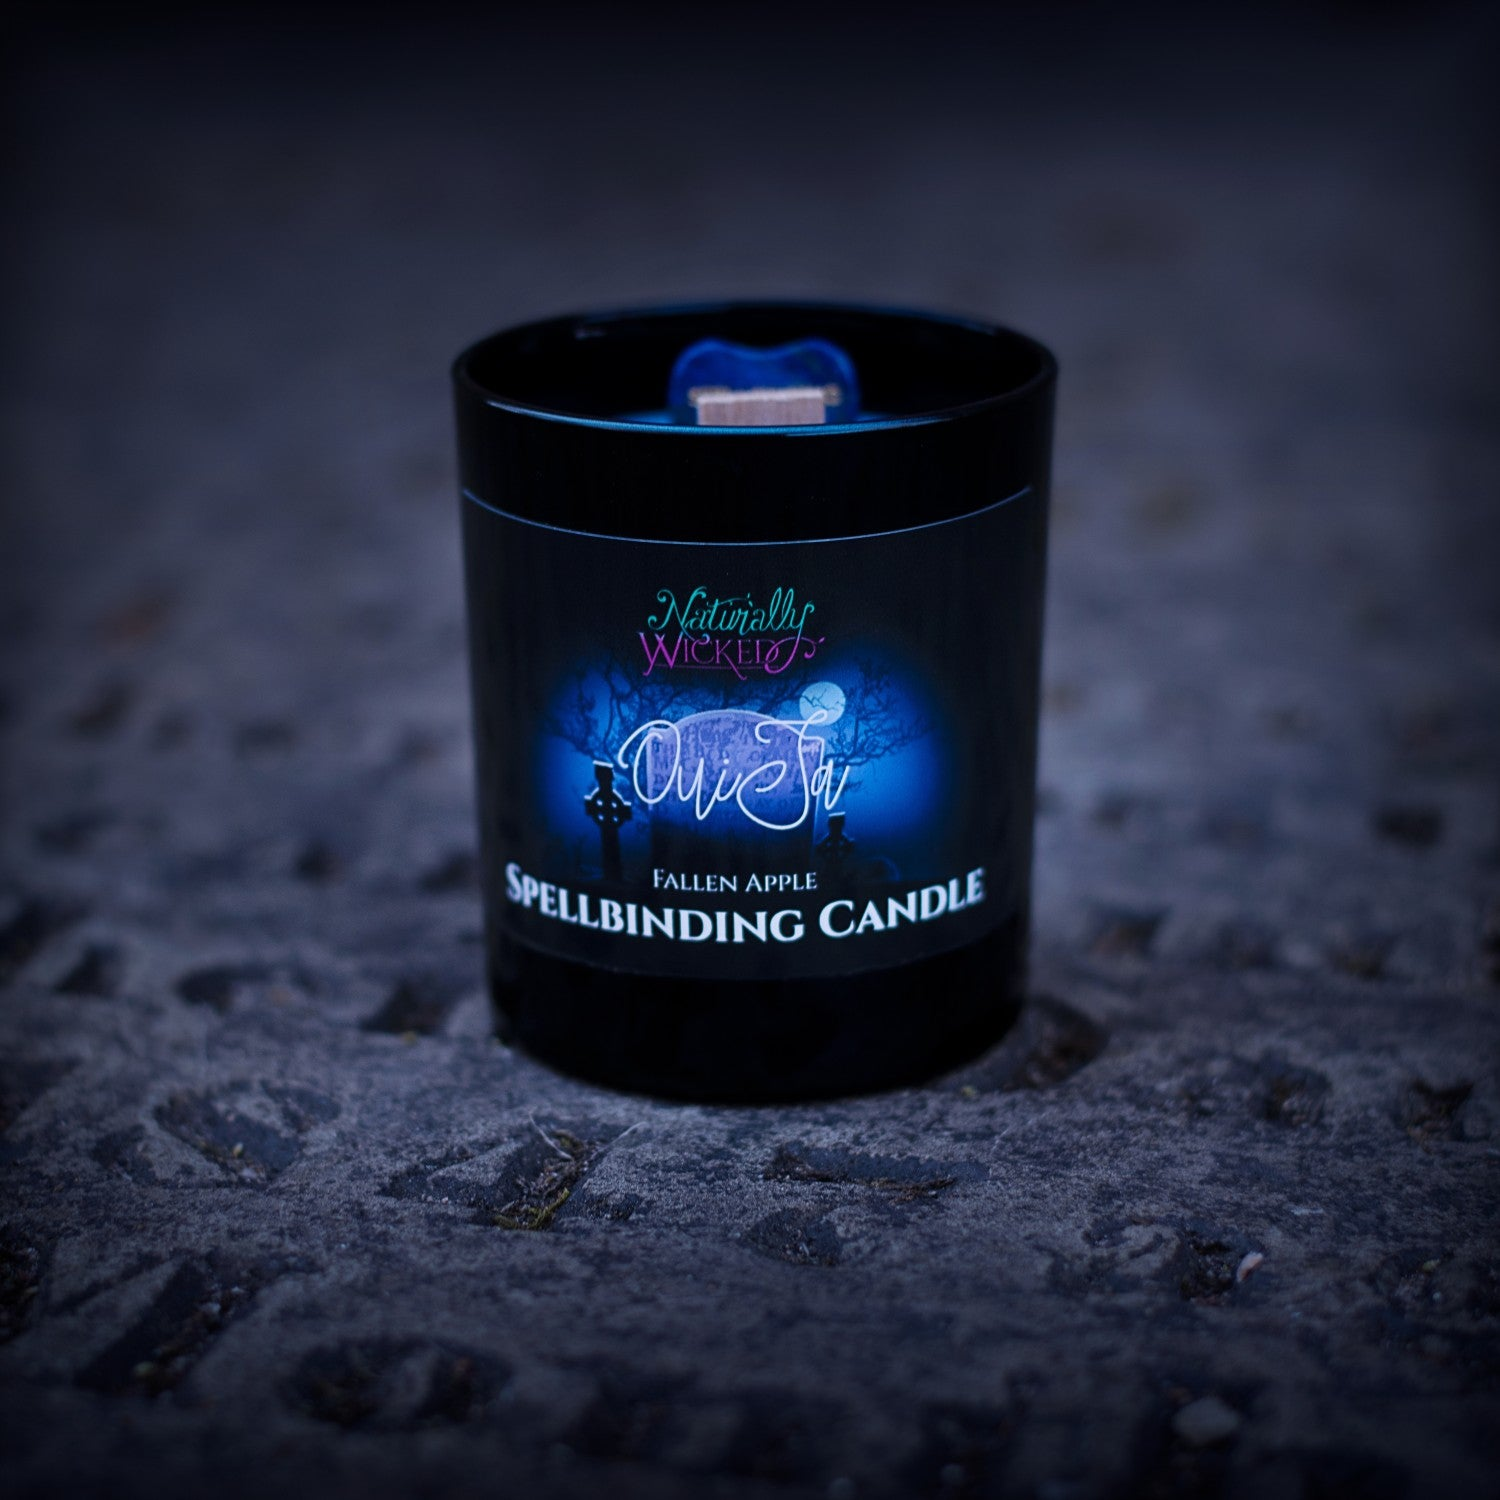 Naturally Wicked Spellbinding Ouija Candle Entombed With Sodalite Crystal Ouija Planchette Sits on Dark Gravestone